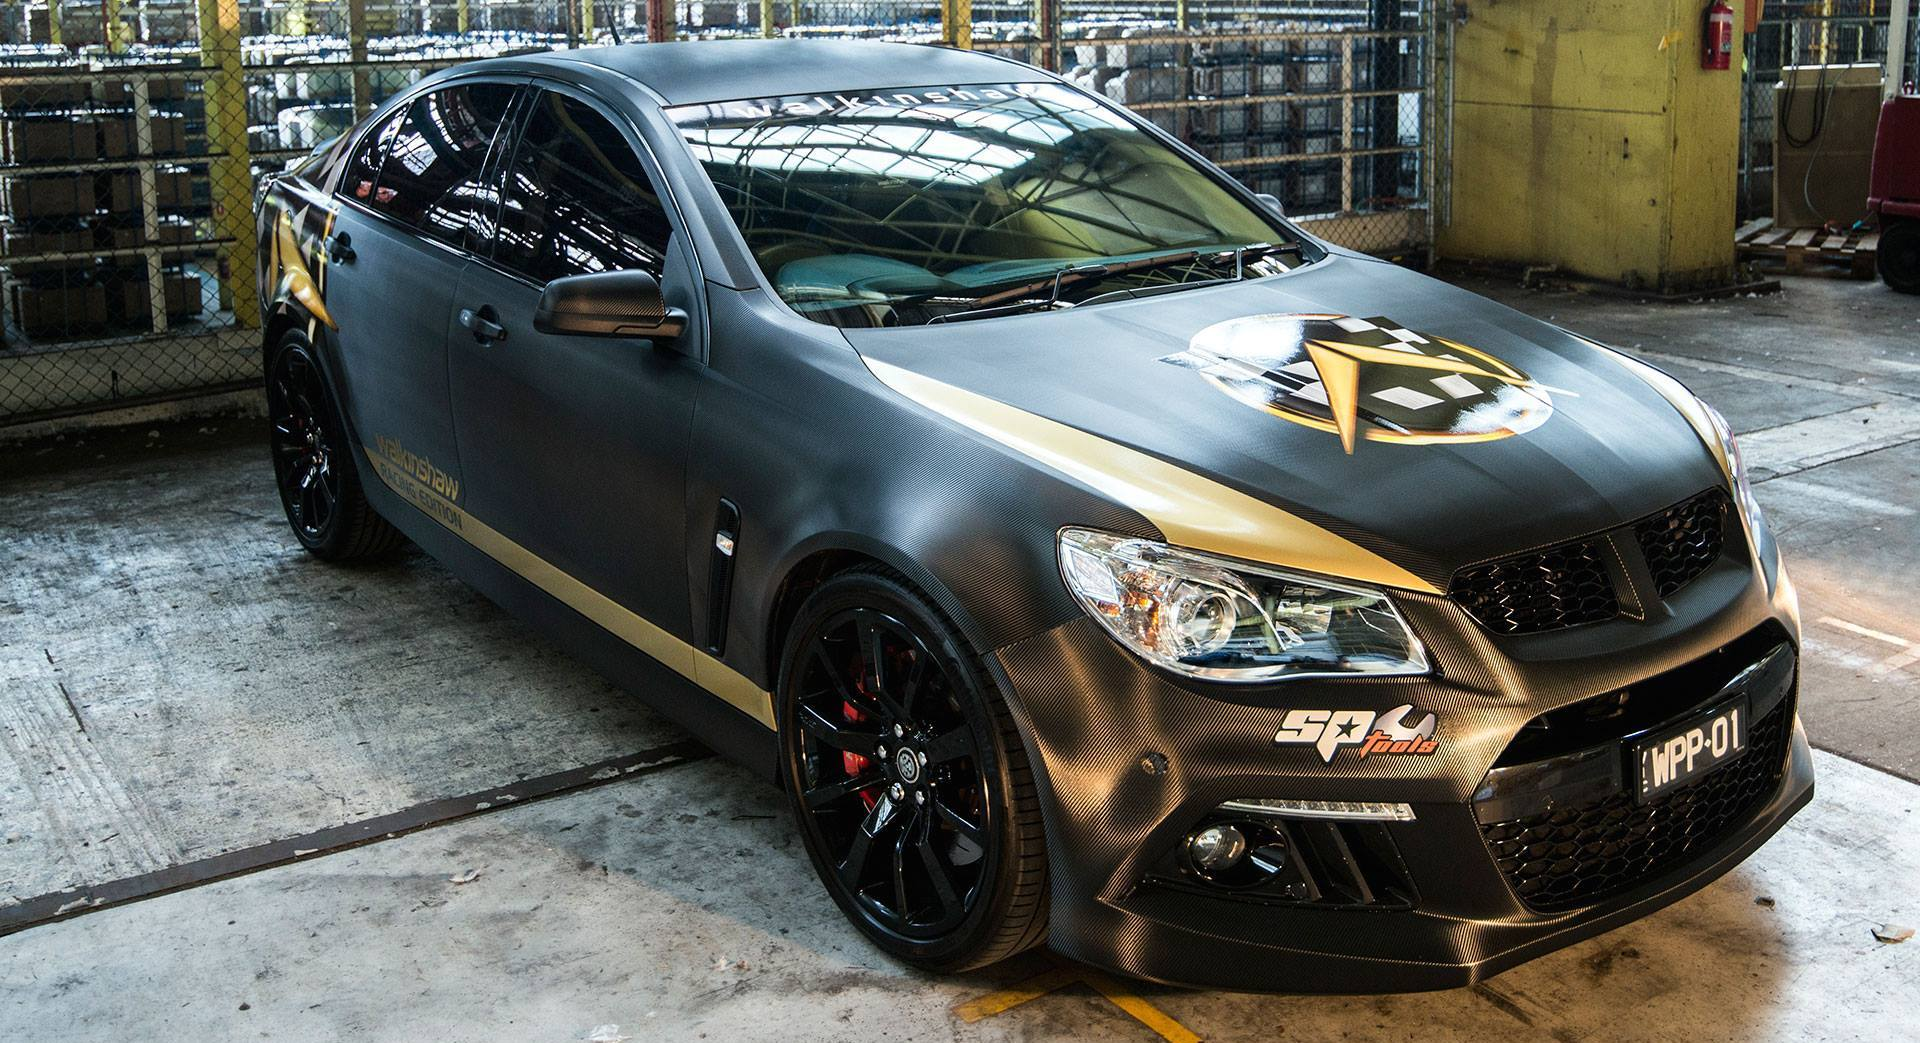 Walkinshaw Racing Limited Edition : V8 supercharger pack boosts HSV